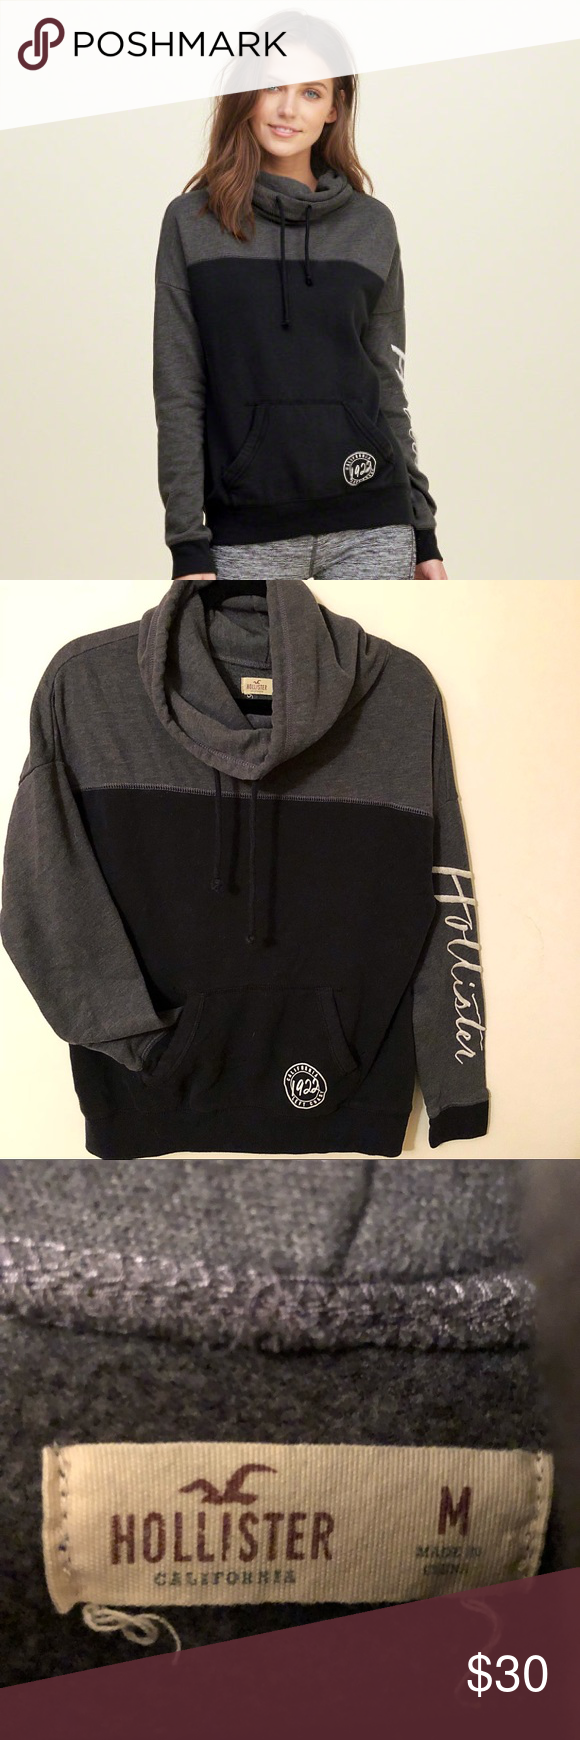 62f14b7be274 Hollister Co cowl neck hoodie Hollister Co cowl neck hoodie! Black ...